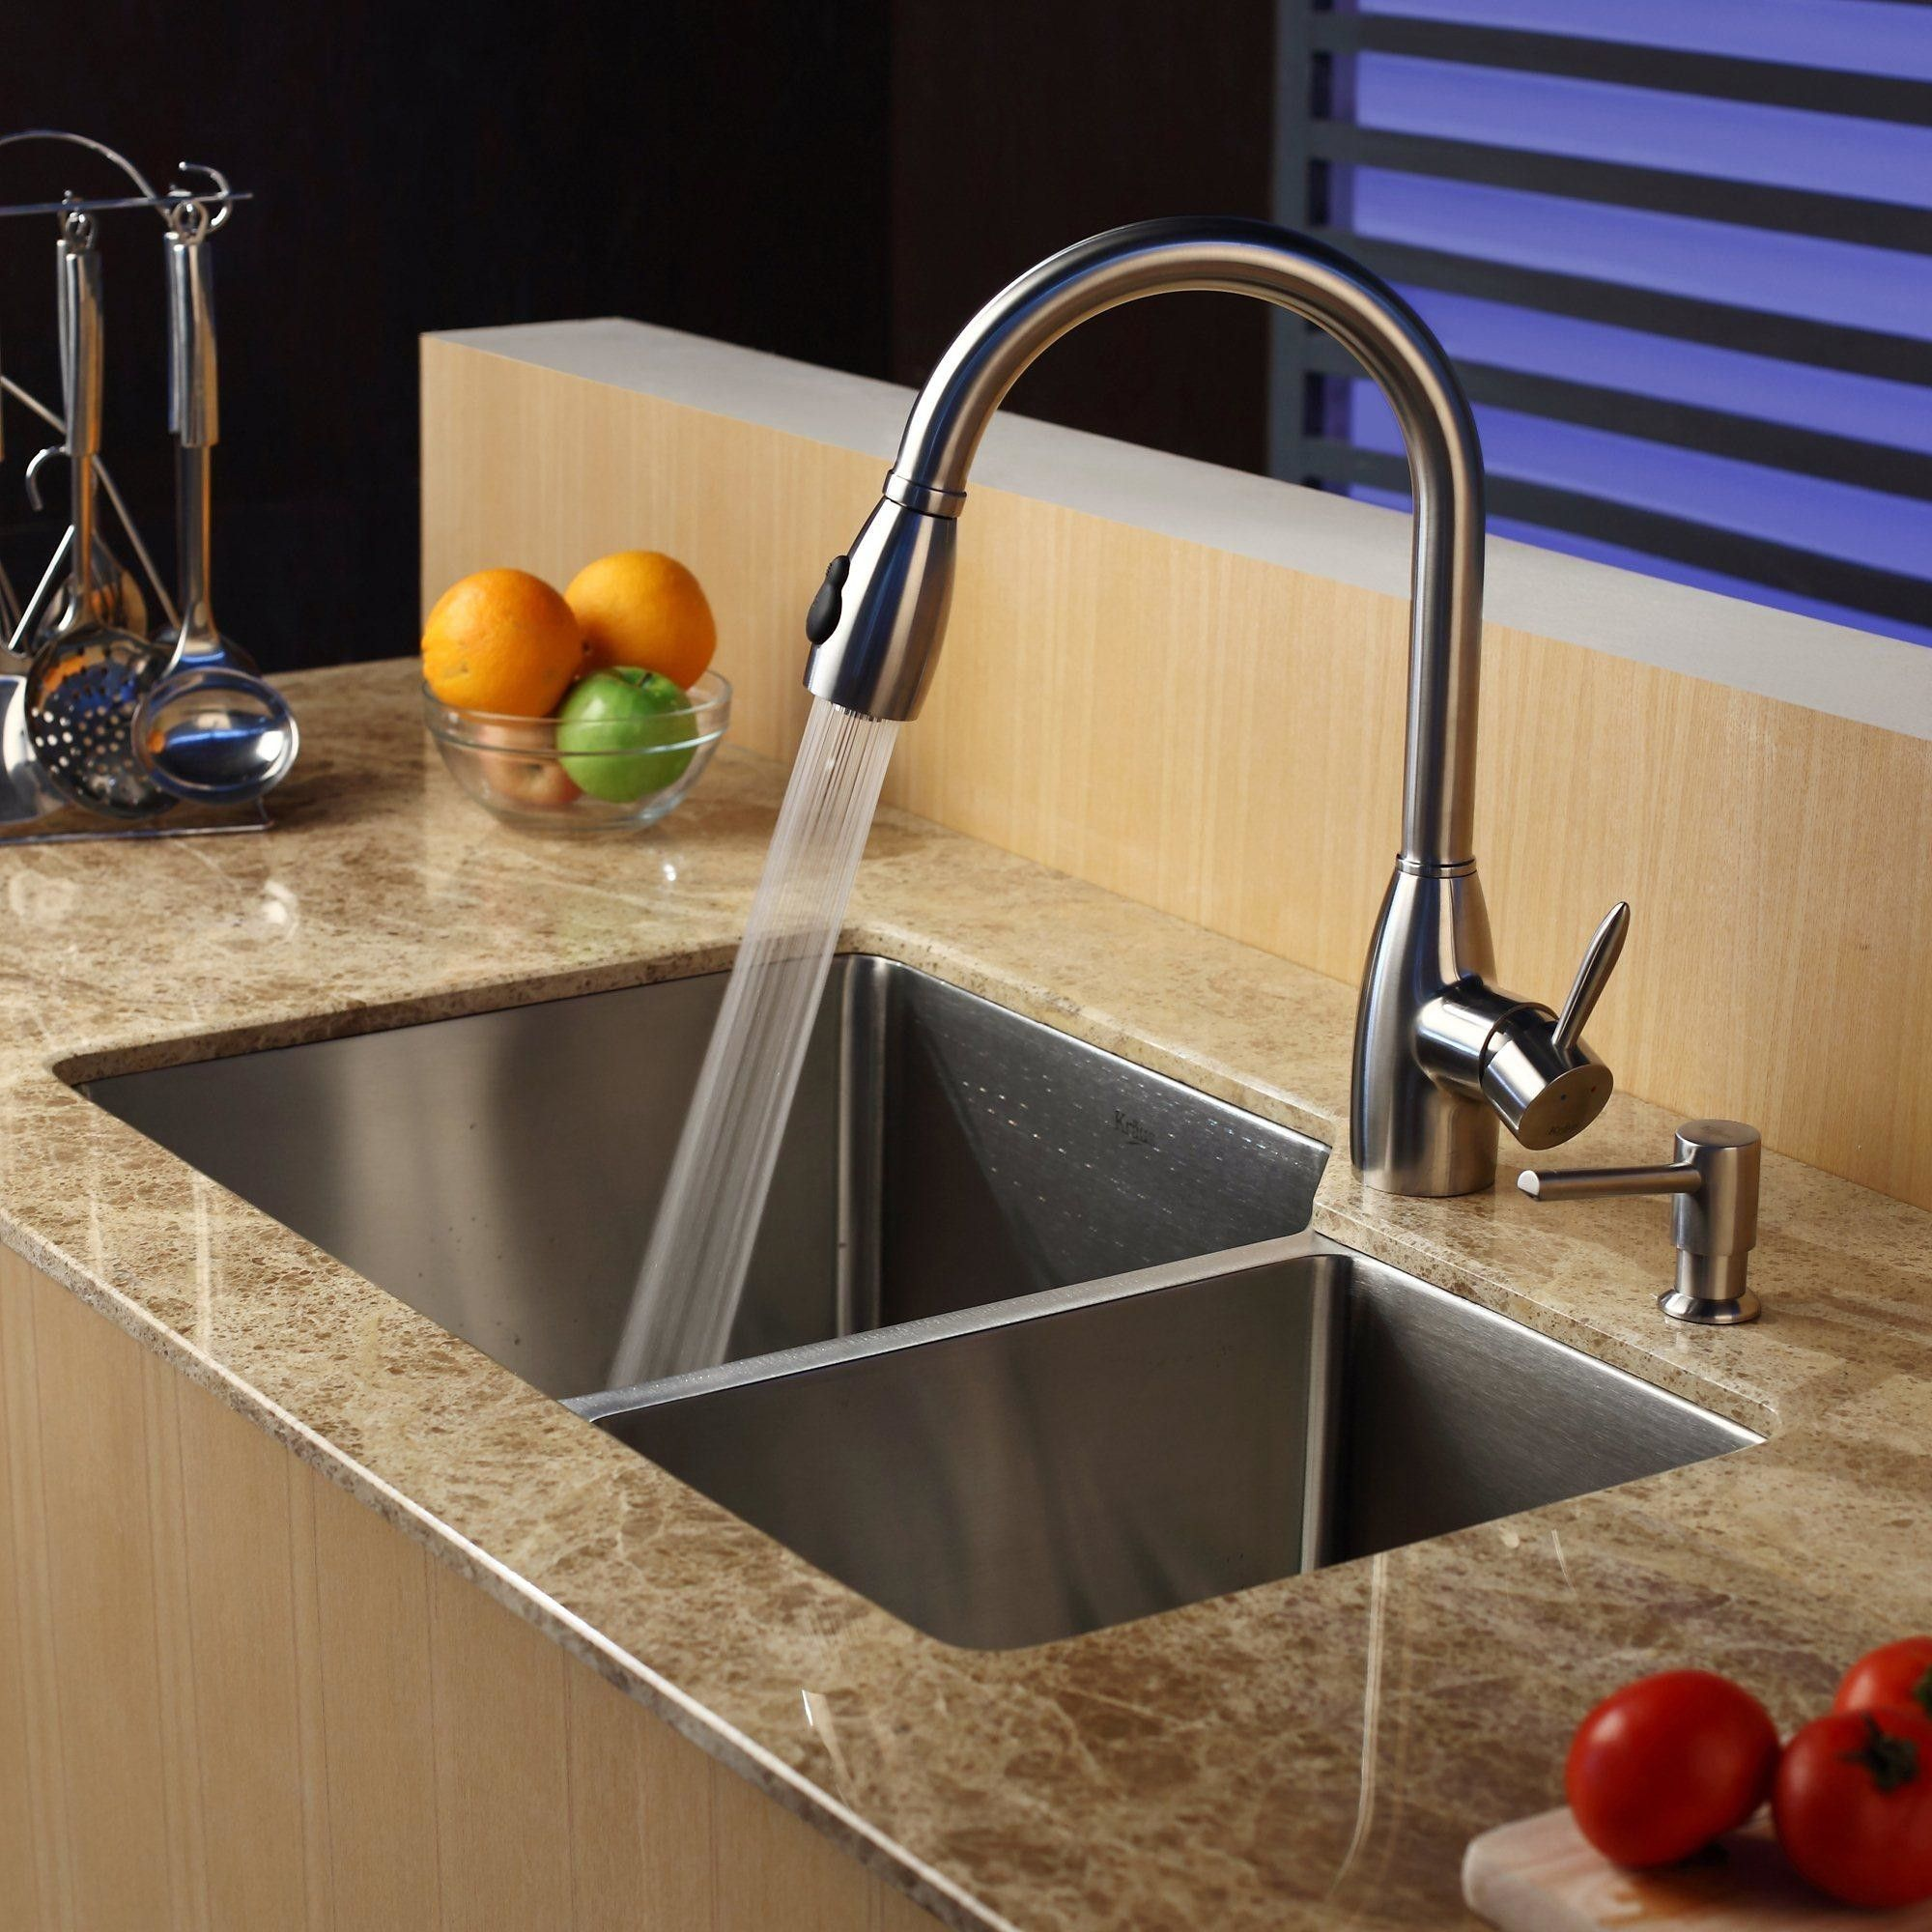 33 X 22 Drop In Kitchen Sink With Basket Strainer 2019